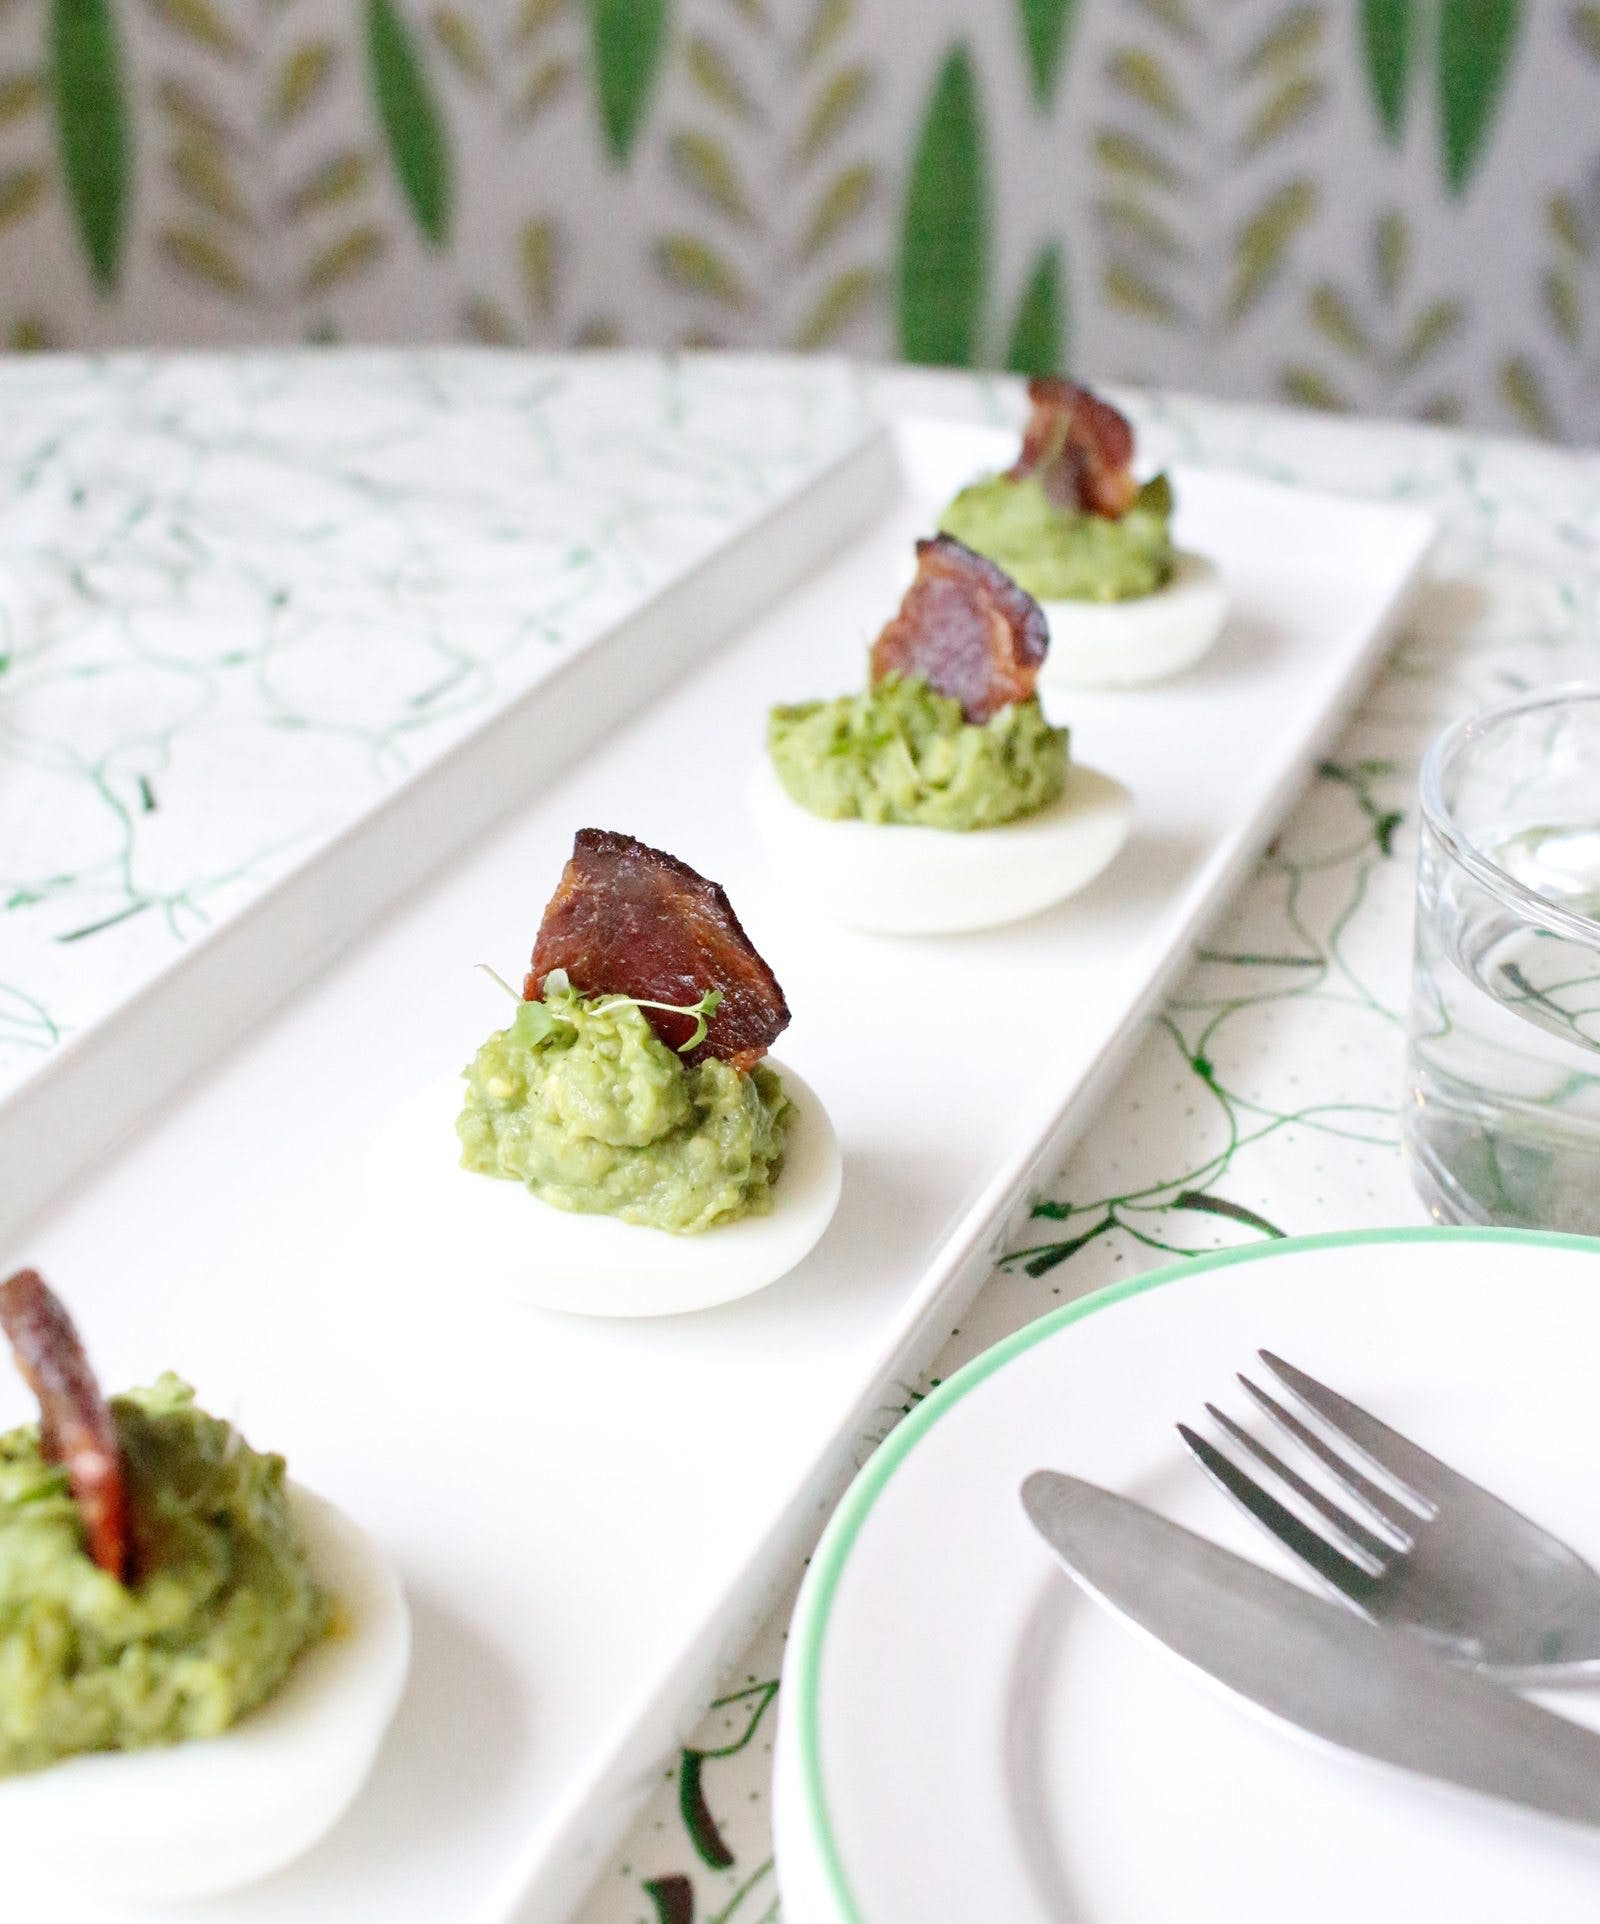 Avocado Eggs with Bacon Sails